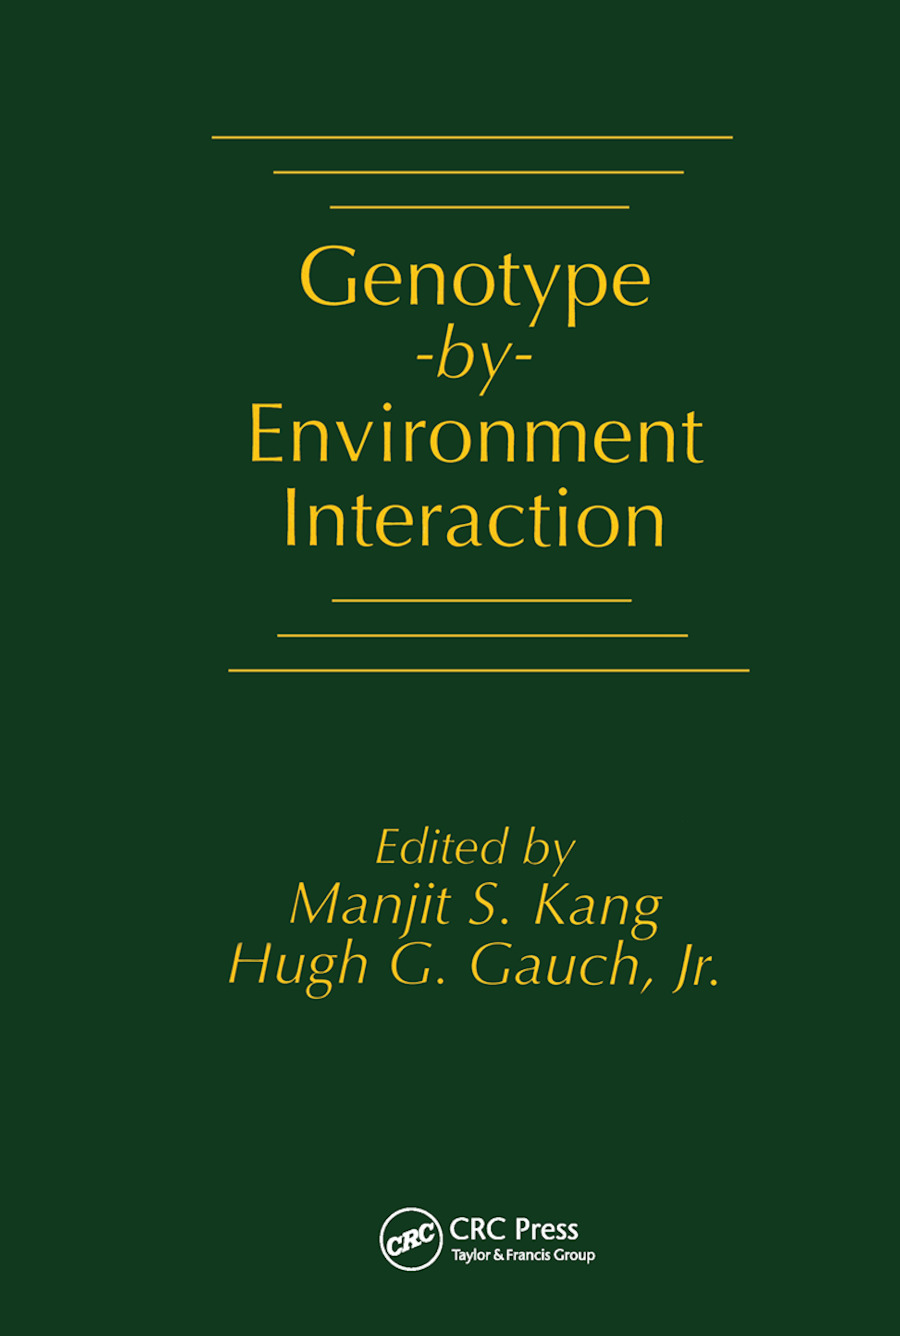 Genotype-by-Environment Interaction